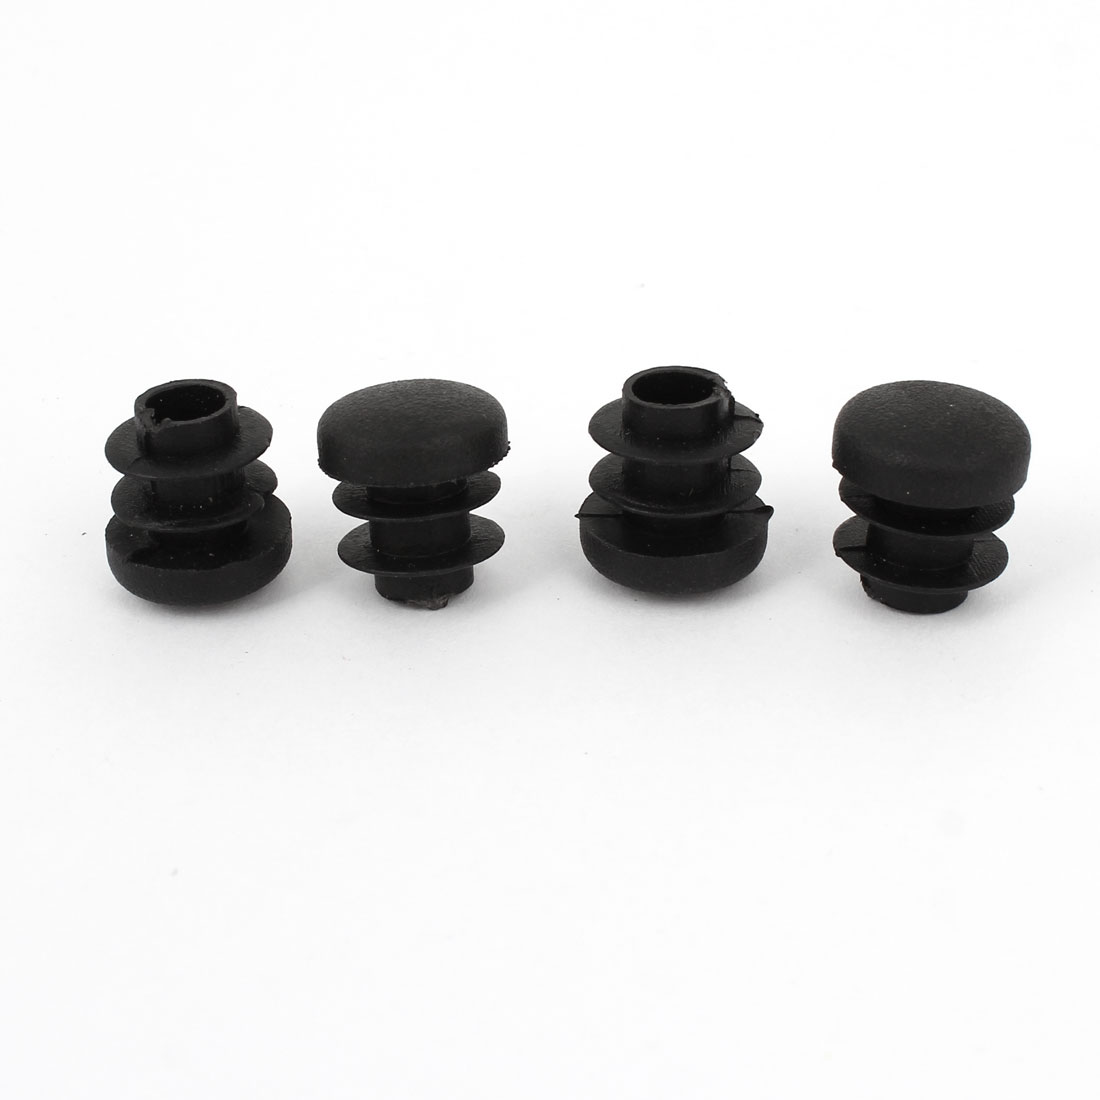 Black Plastic 14mm Diameter Blanking End Caps Round Tube Insert 4 Pcs